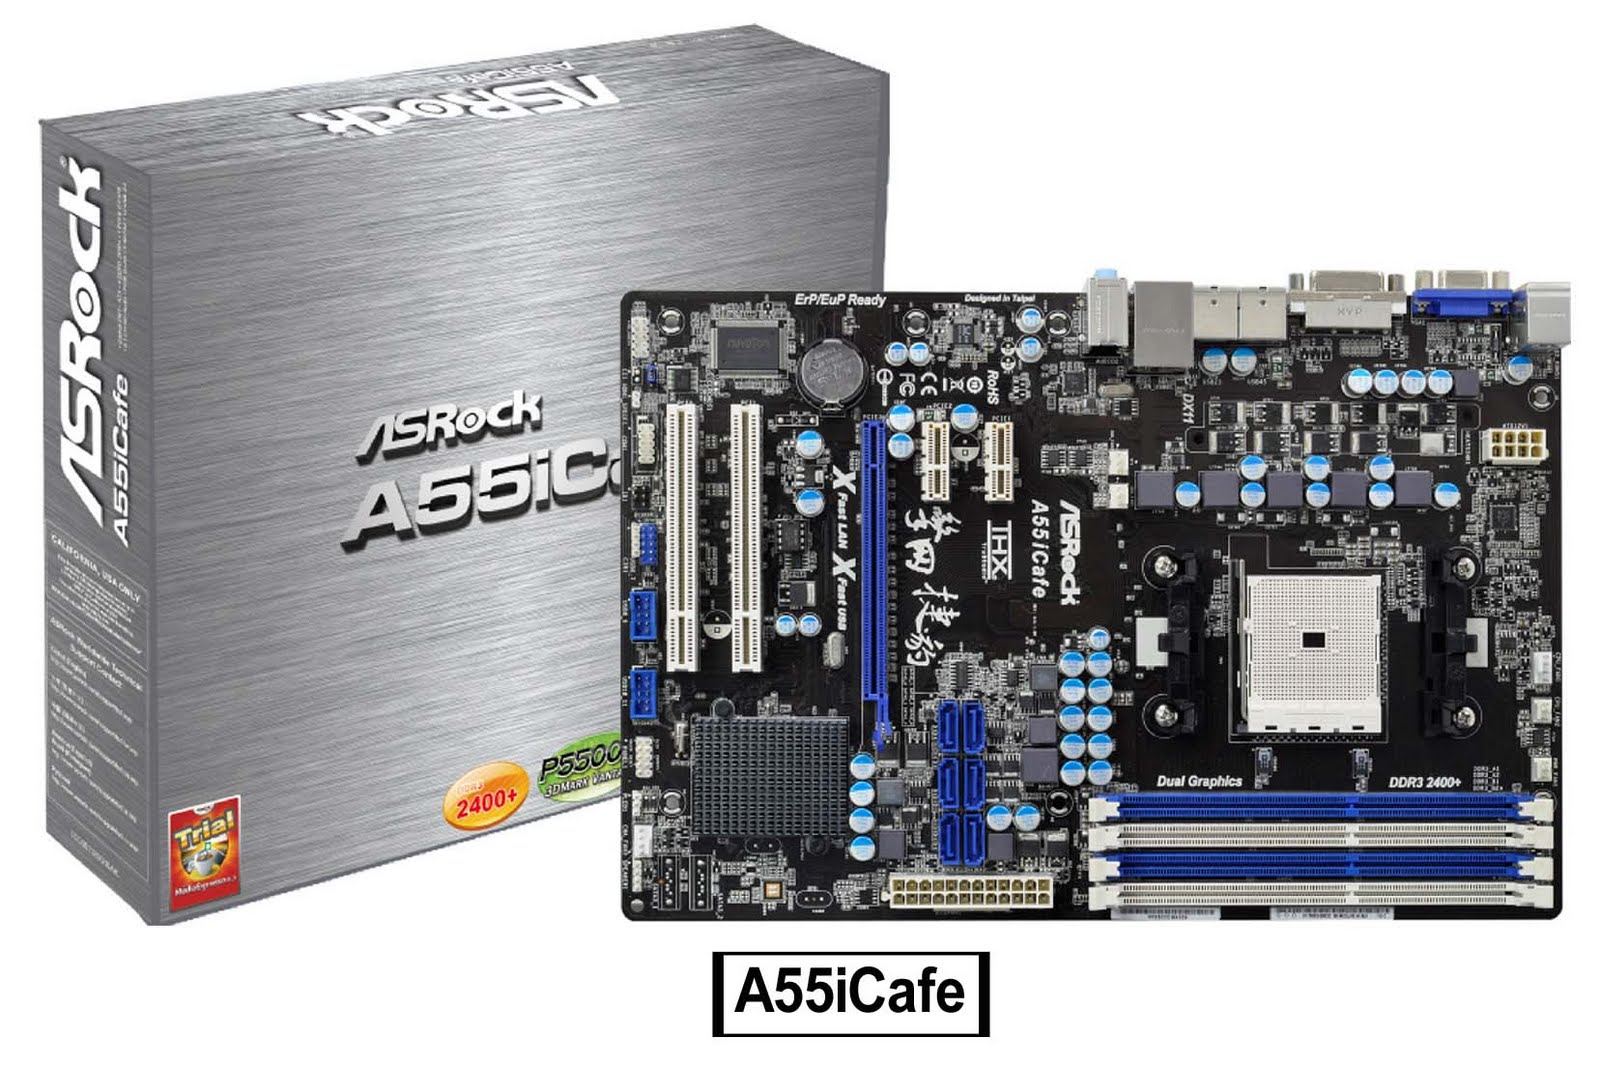 Asrock A55iCafe AMD Fusion Windows 8